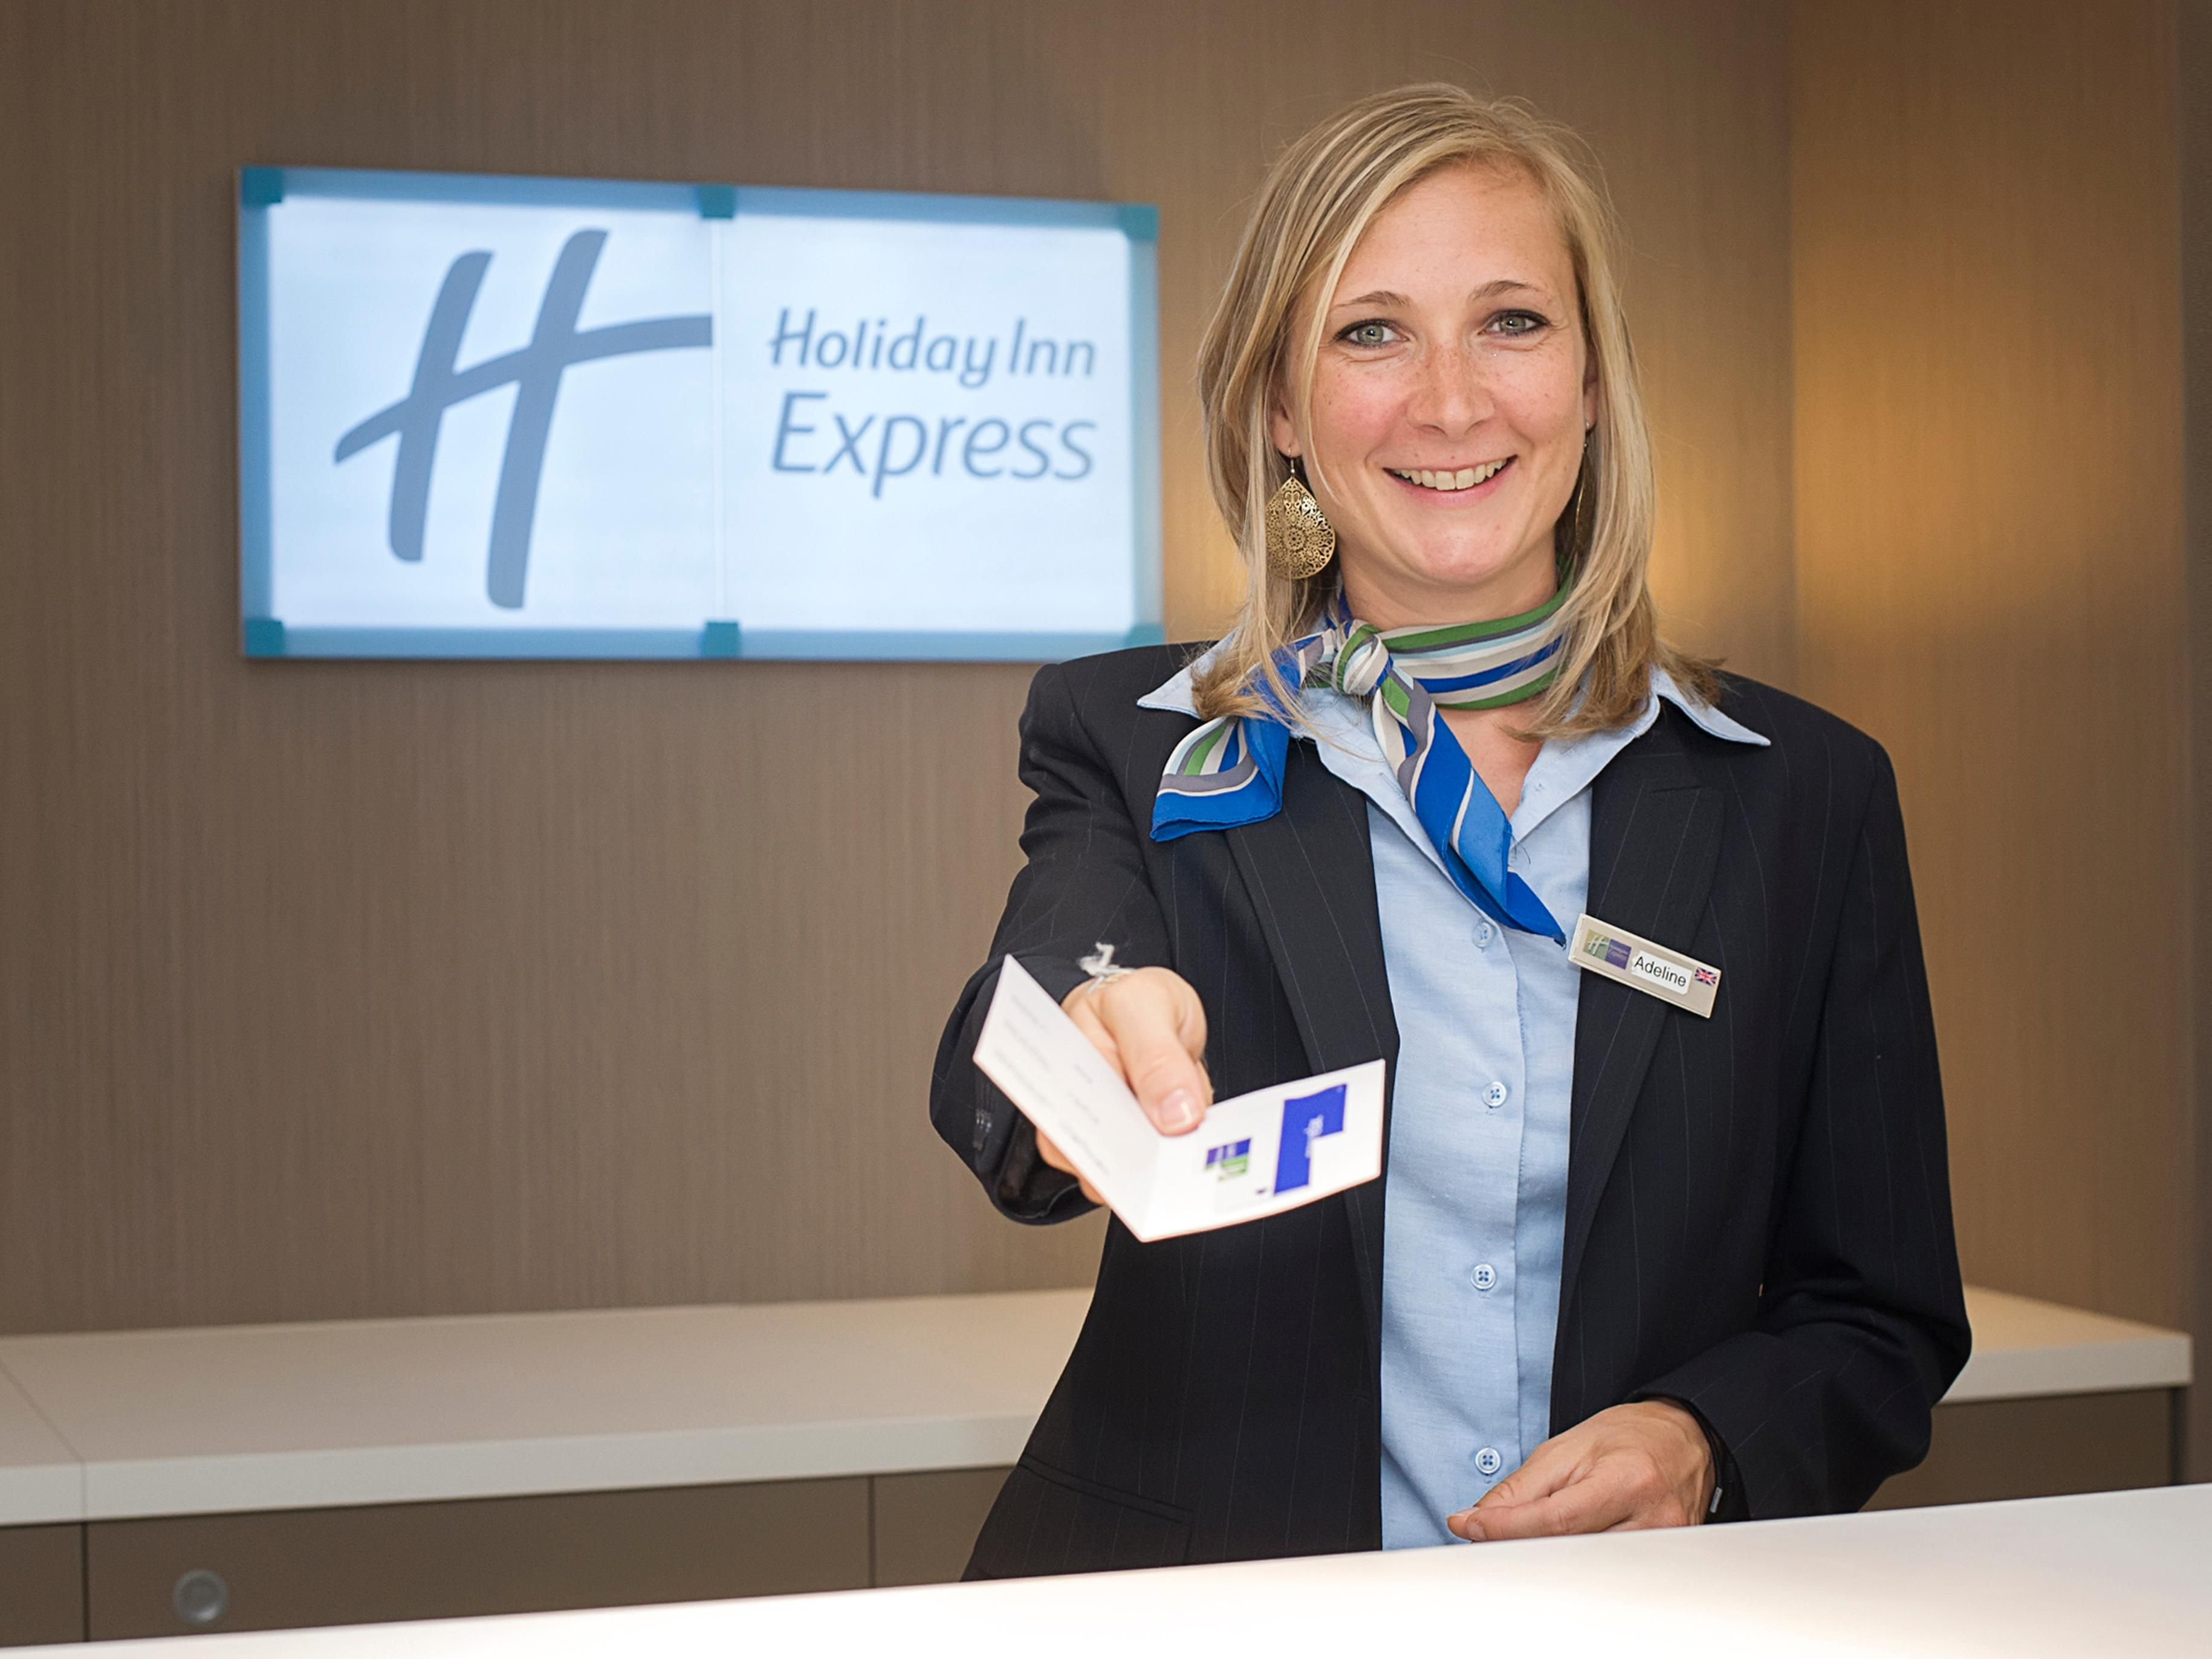 Our friendly staff is available in front desk to assit you